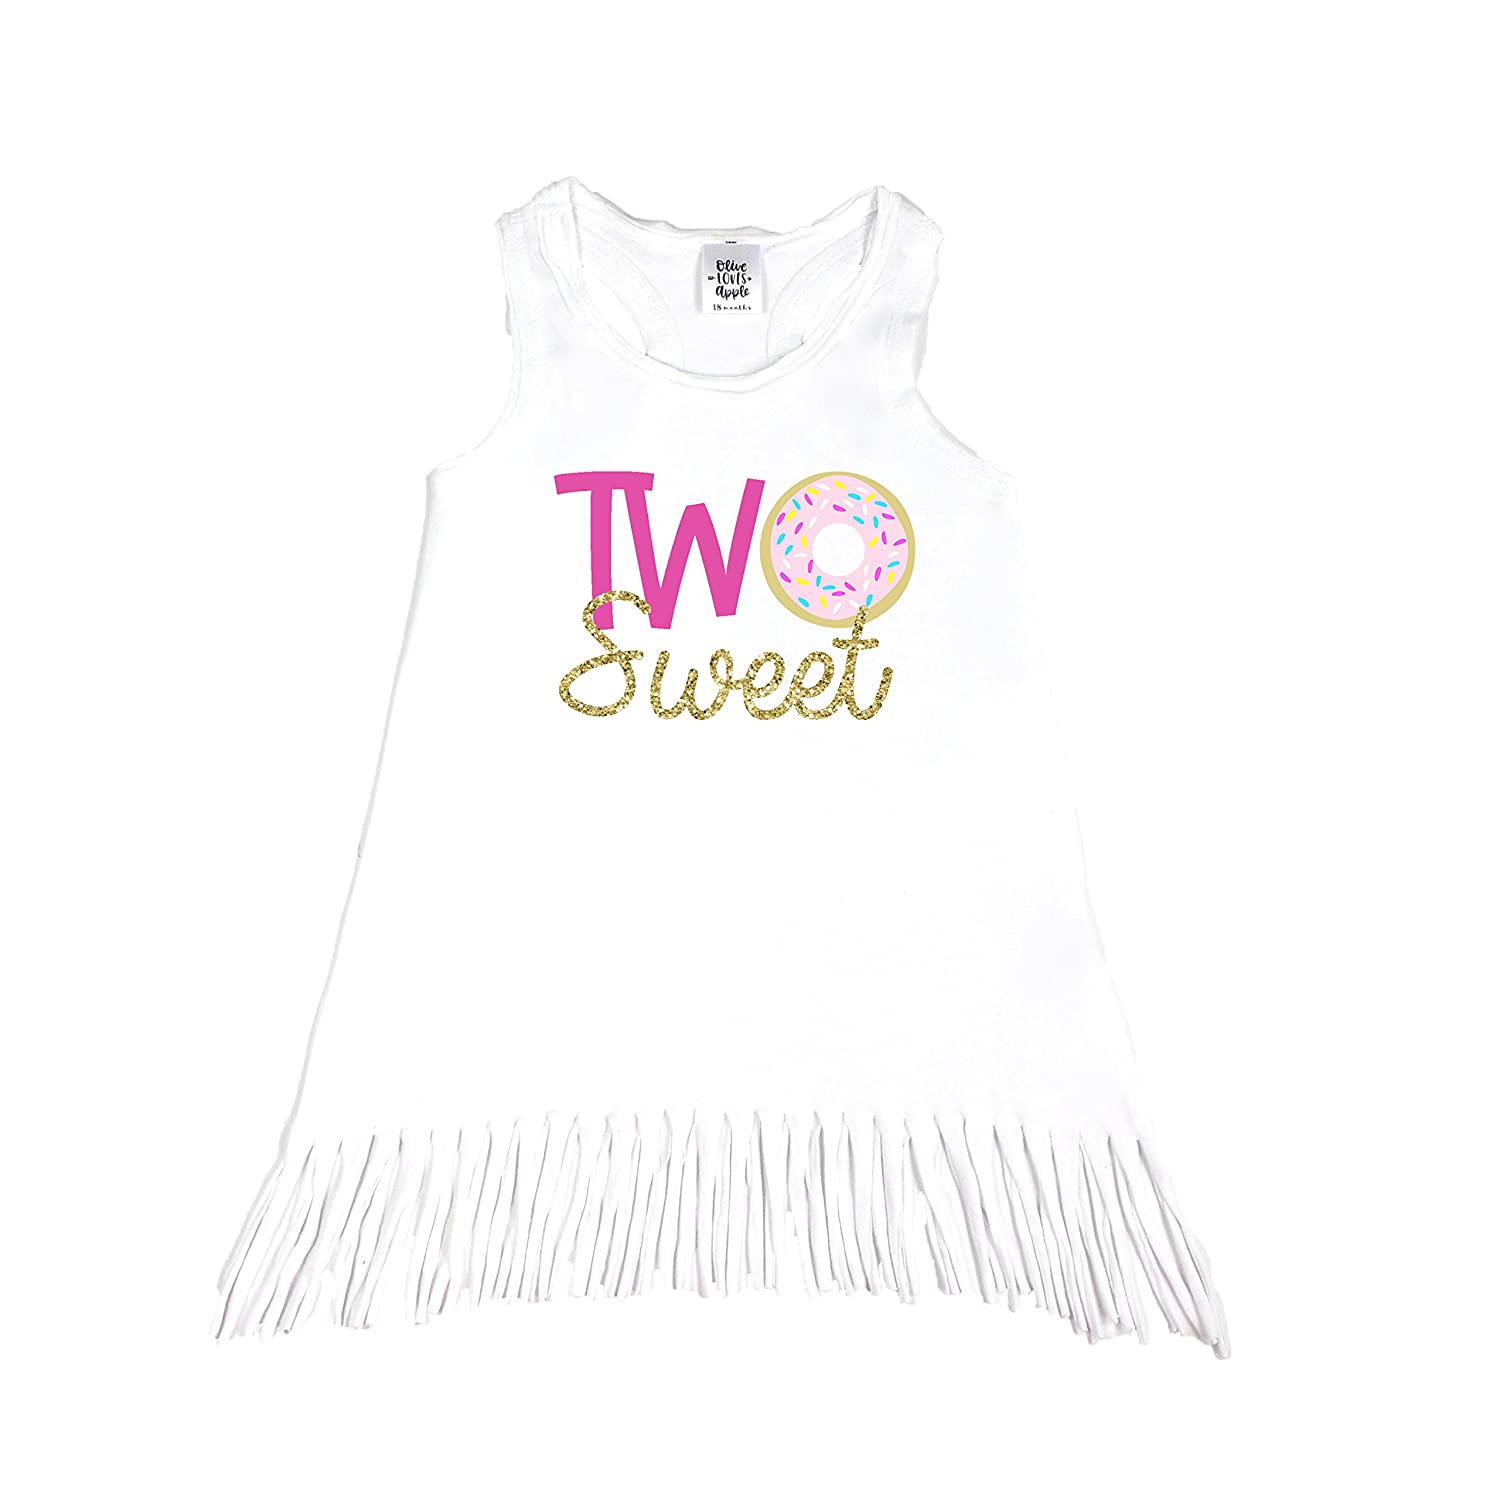 Amazon Olive Loves Apple Girls 2nd Birthday Shirt Two Sweet Donut Outfit For Toddler Clothing